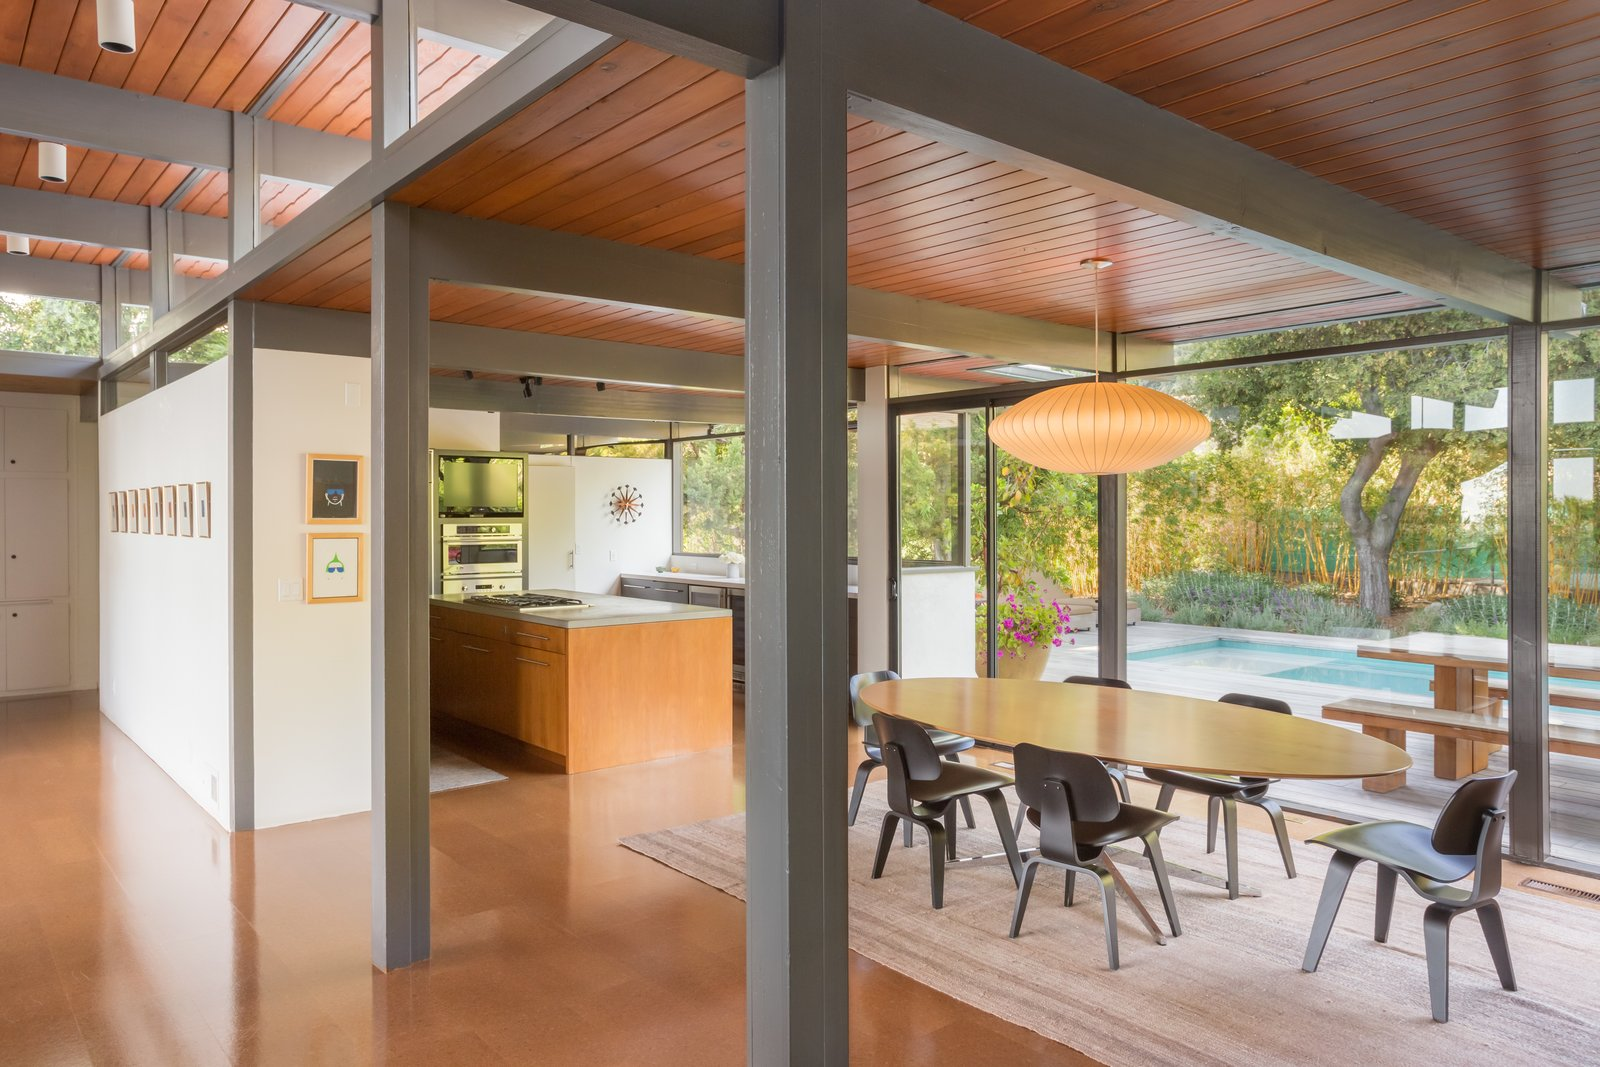 This Post-and-Beam in Pasadena Offers Classic California Living For $1.9M - Photo 4 of 12